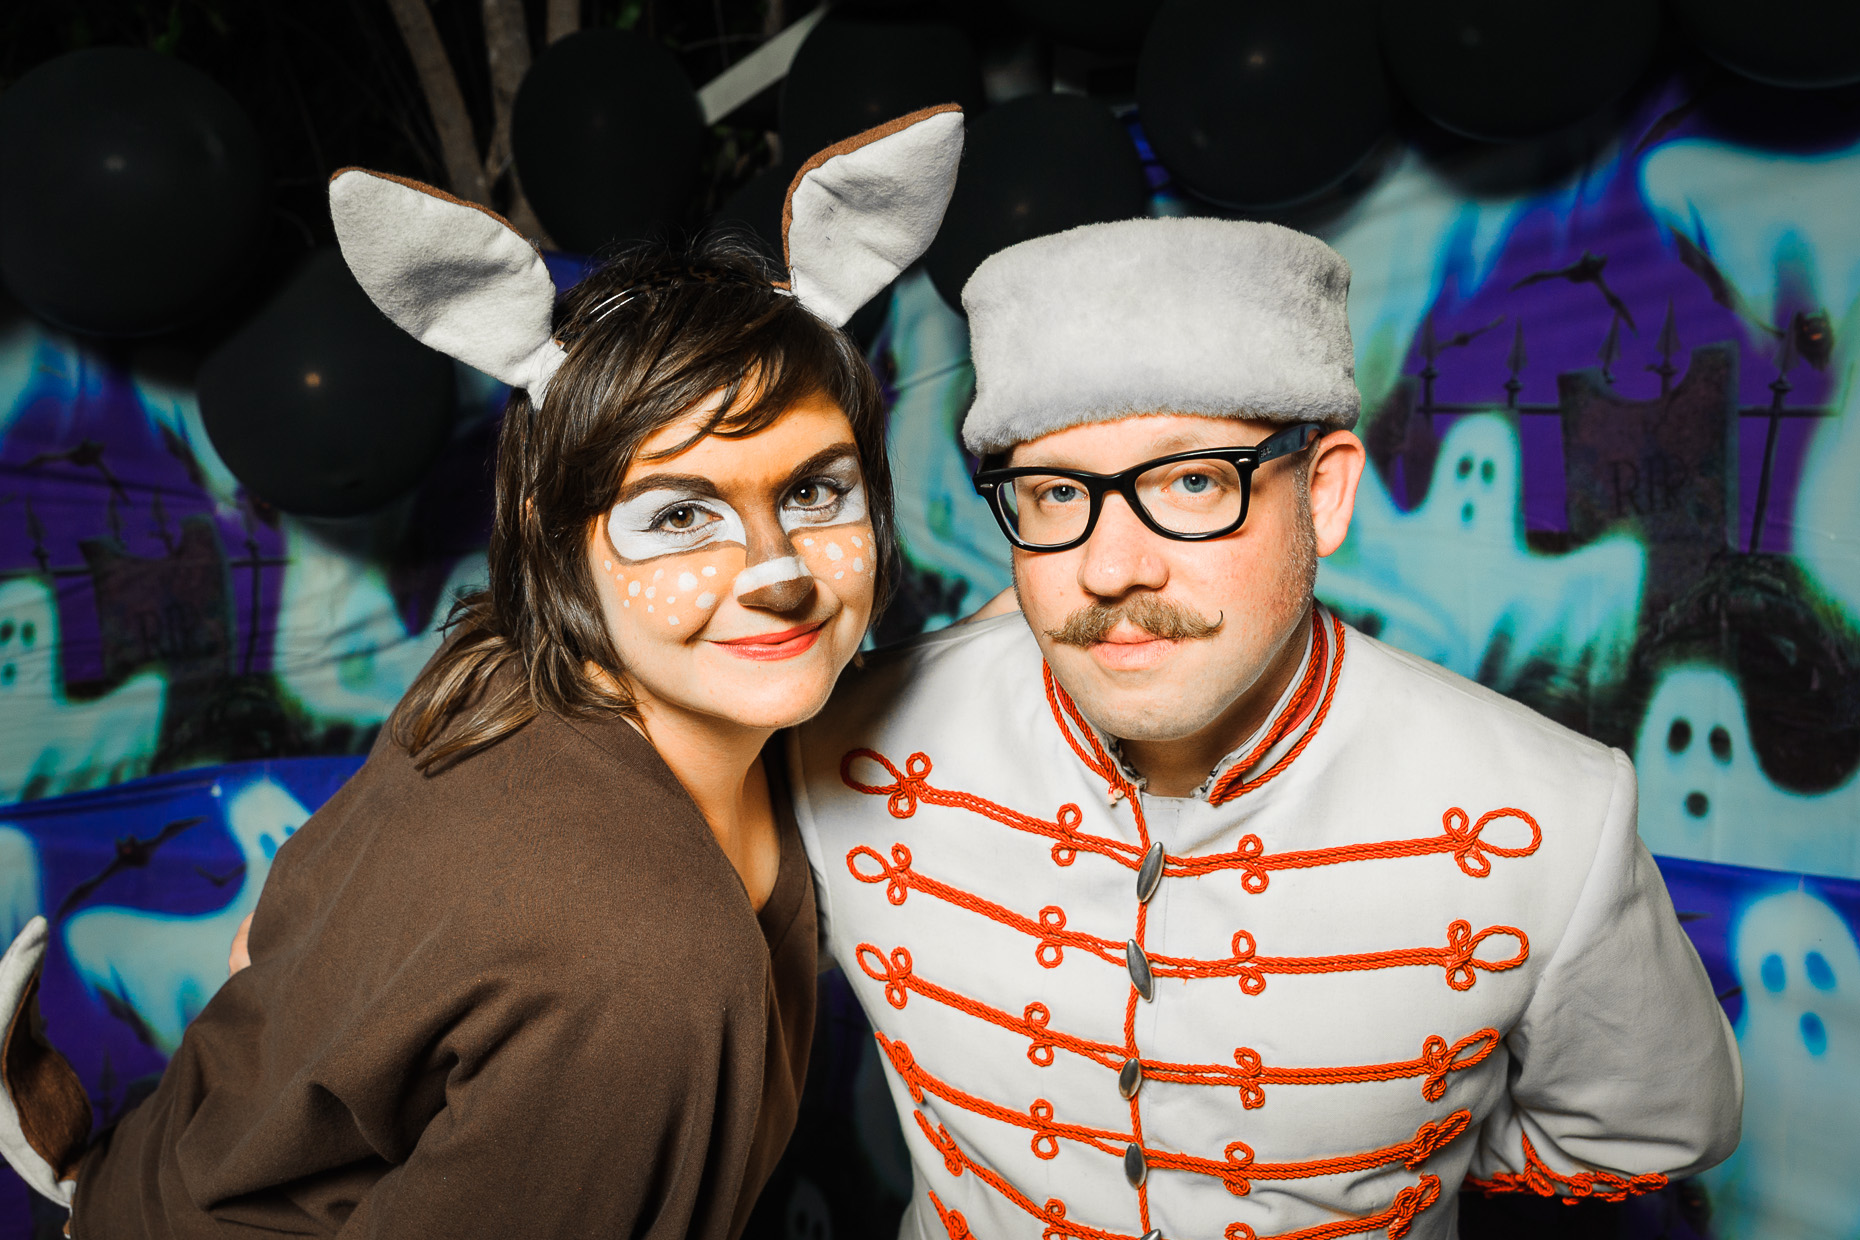 Austin-Event-Commercial-Photographer-Photobooth-Halloween.jpg